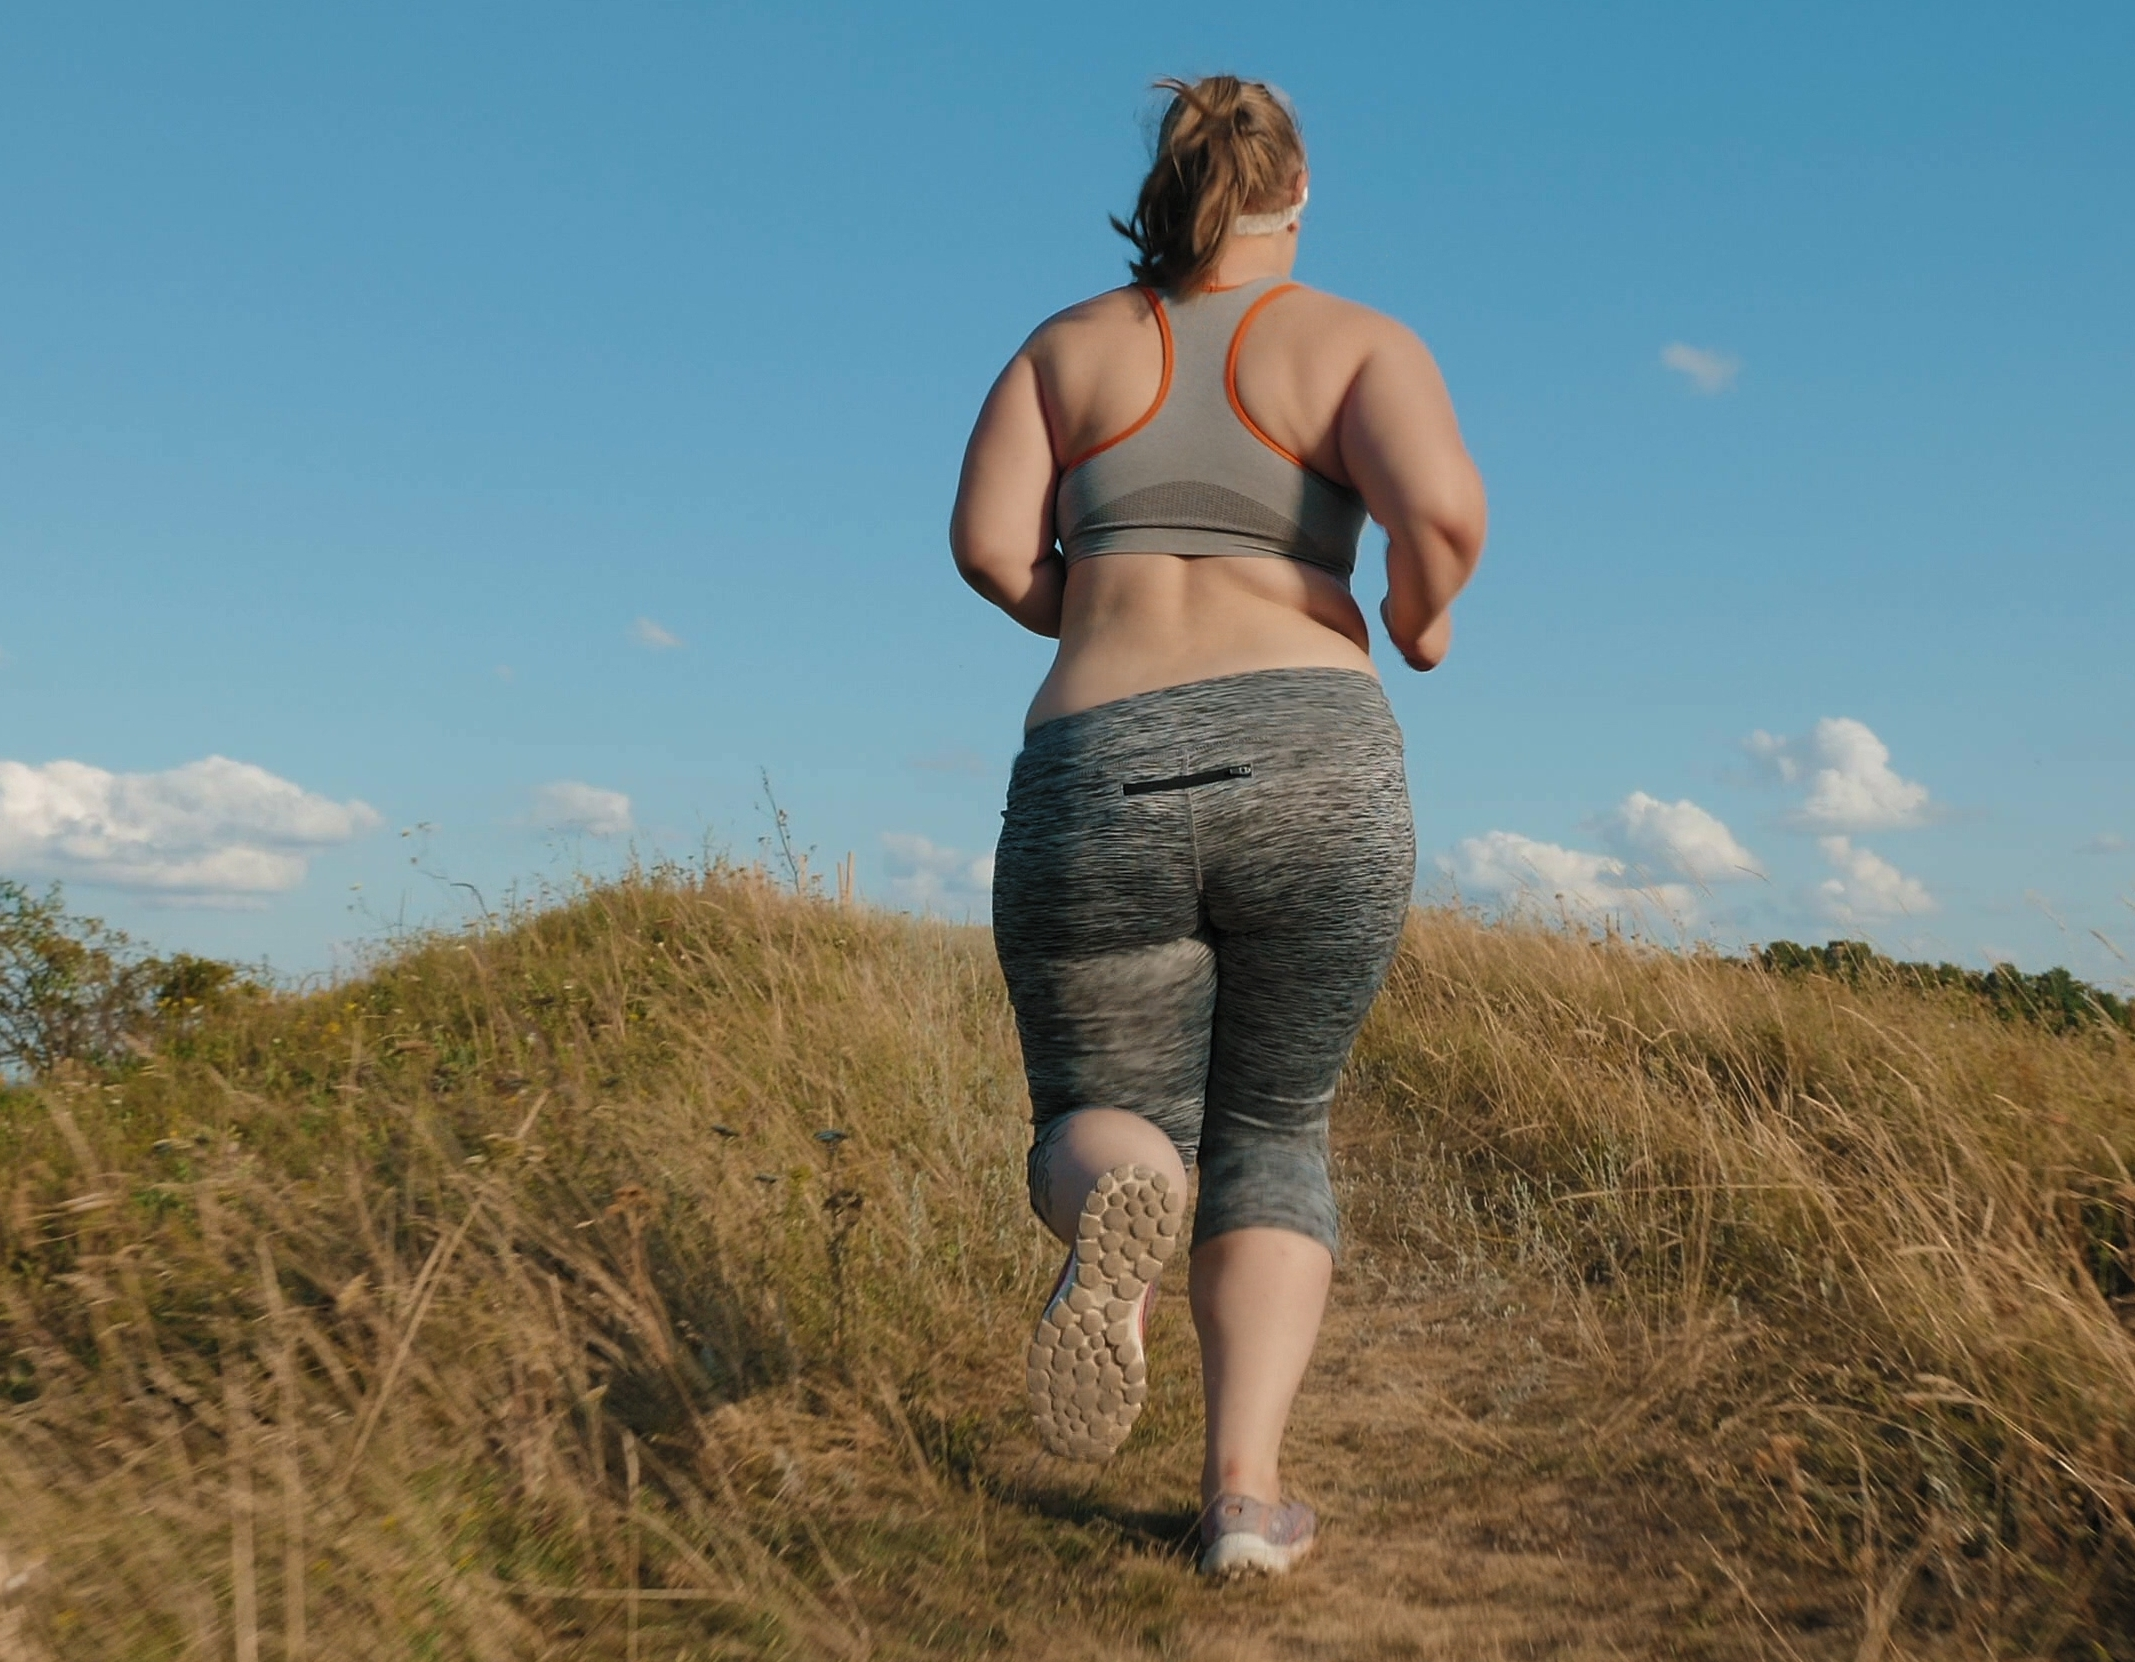 Uphill Walking Tips for Overweight: Get Fit, Lose Weight